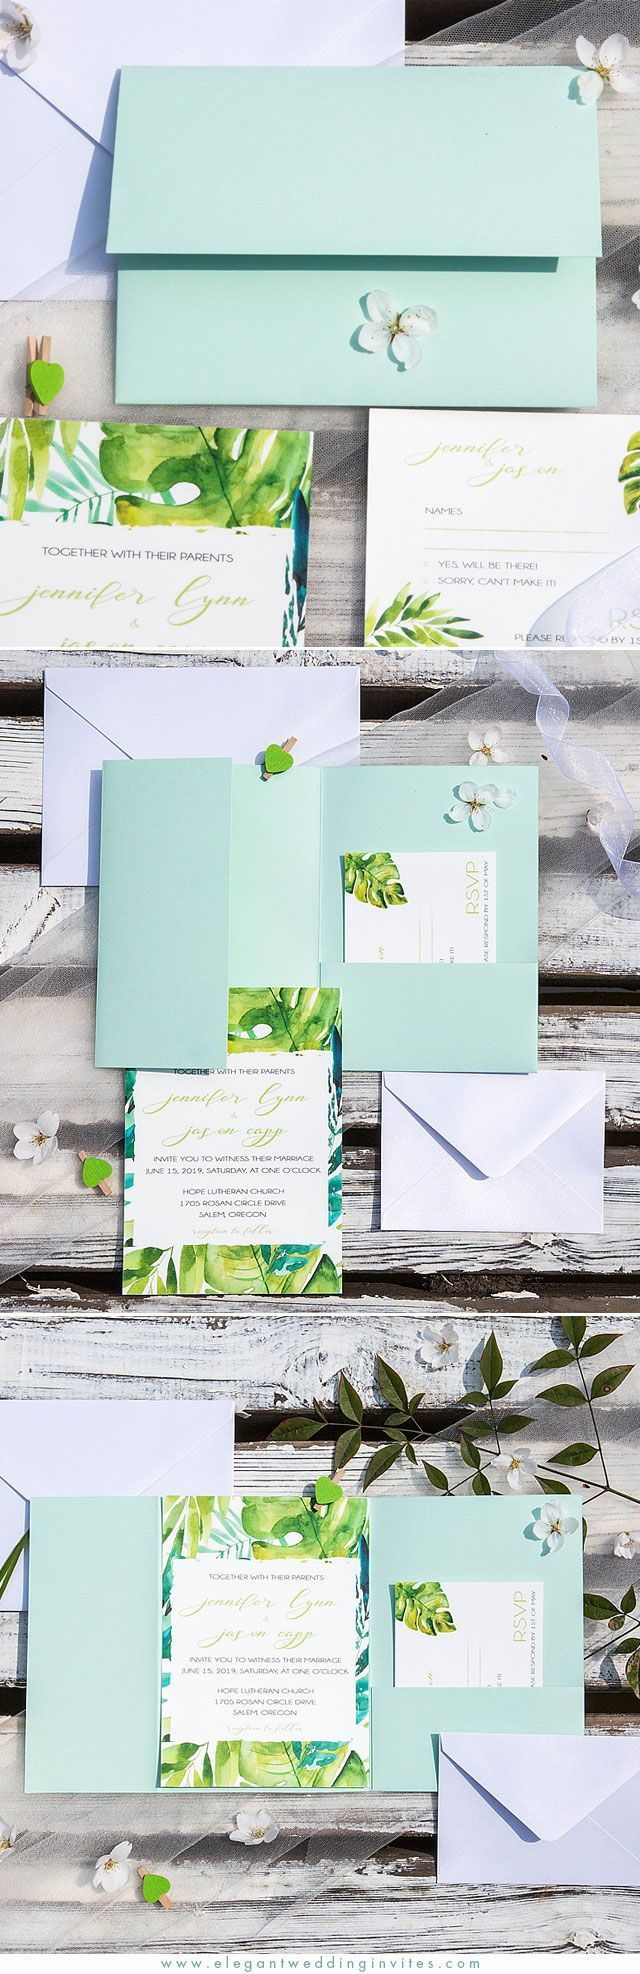 wedding invitation mint green%0A into the tropics  u     tropical leaves inspired invitation with mint pocket  fold EWDH